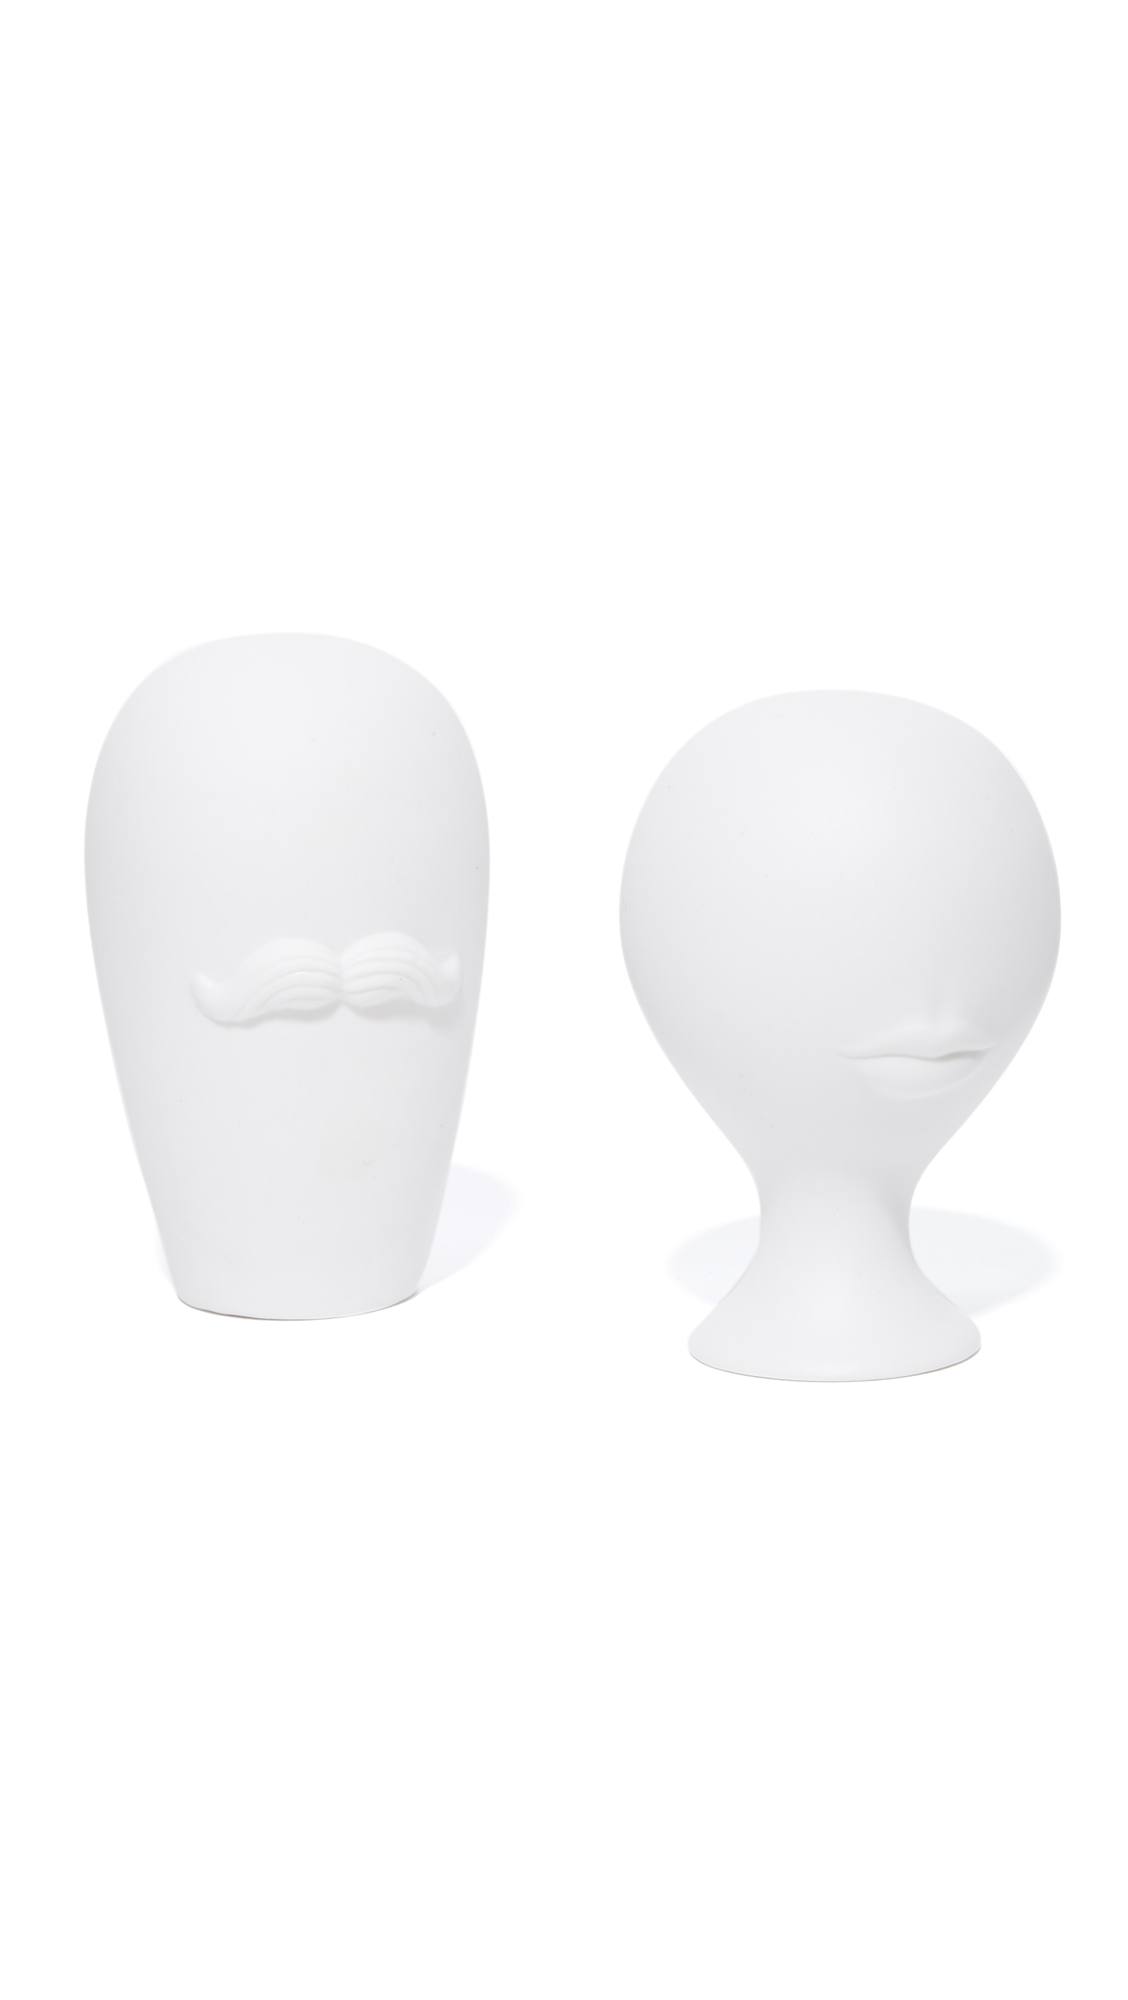 Jonathan Adler Mr. & Mrs. Muse Salt + Pepper Shakers - White